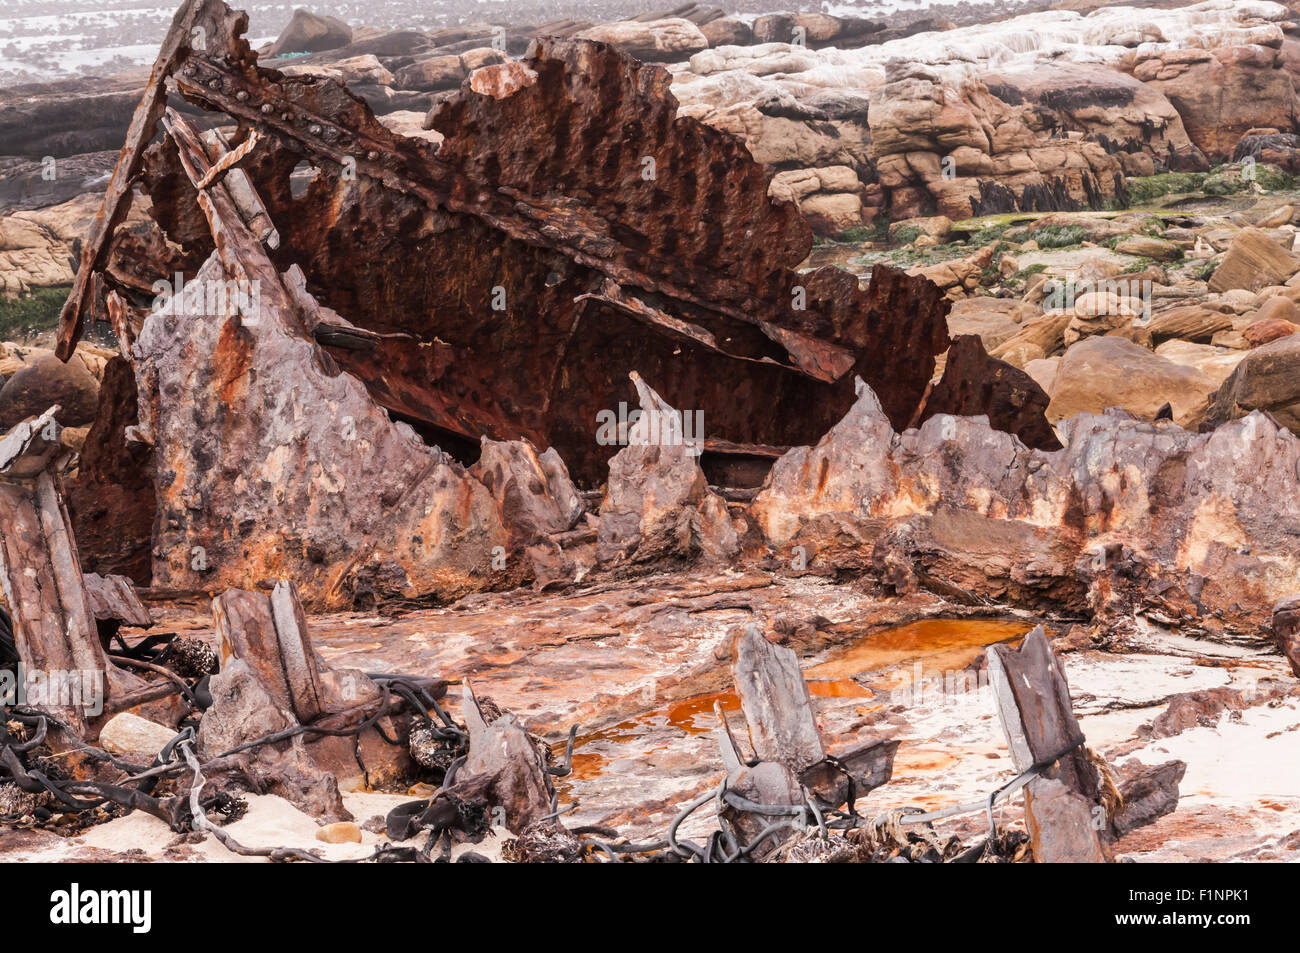 Ship Wreck at the Western Cape - Stock Image